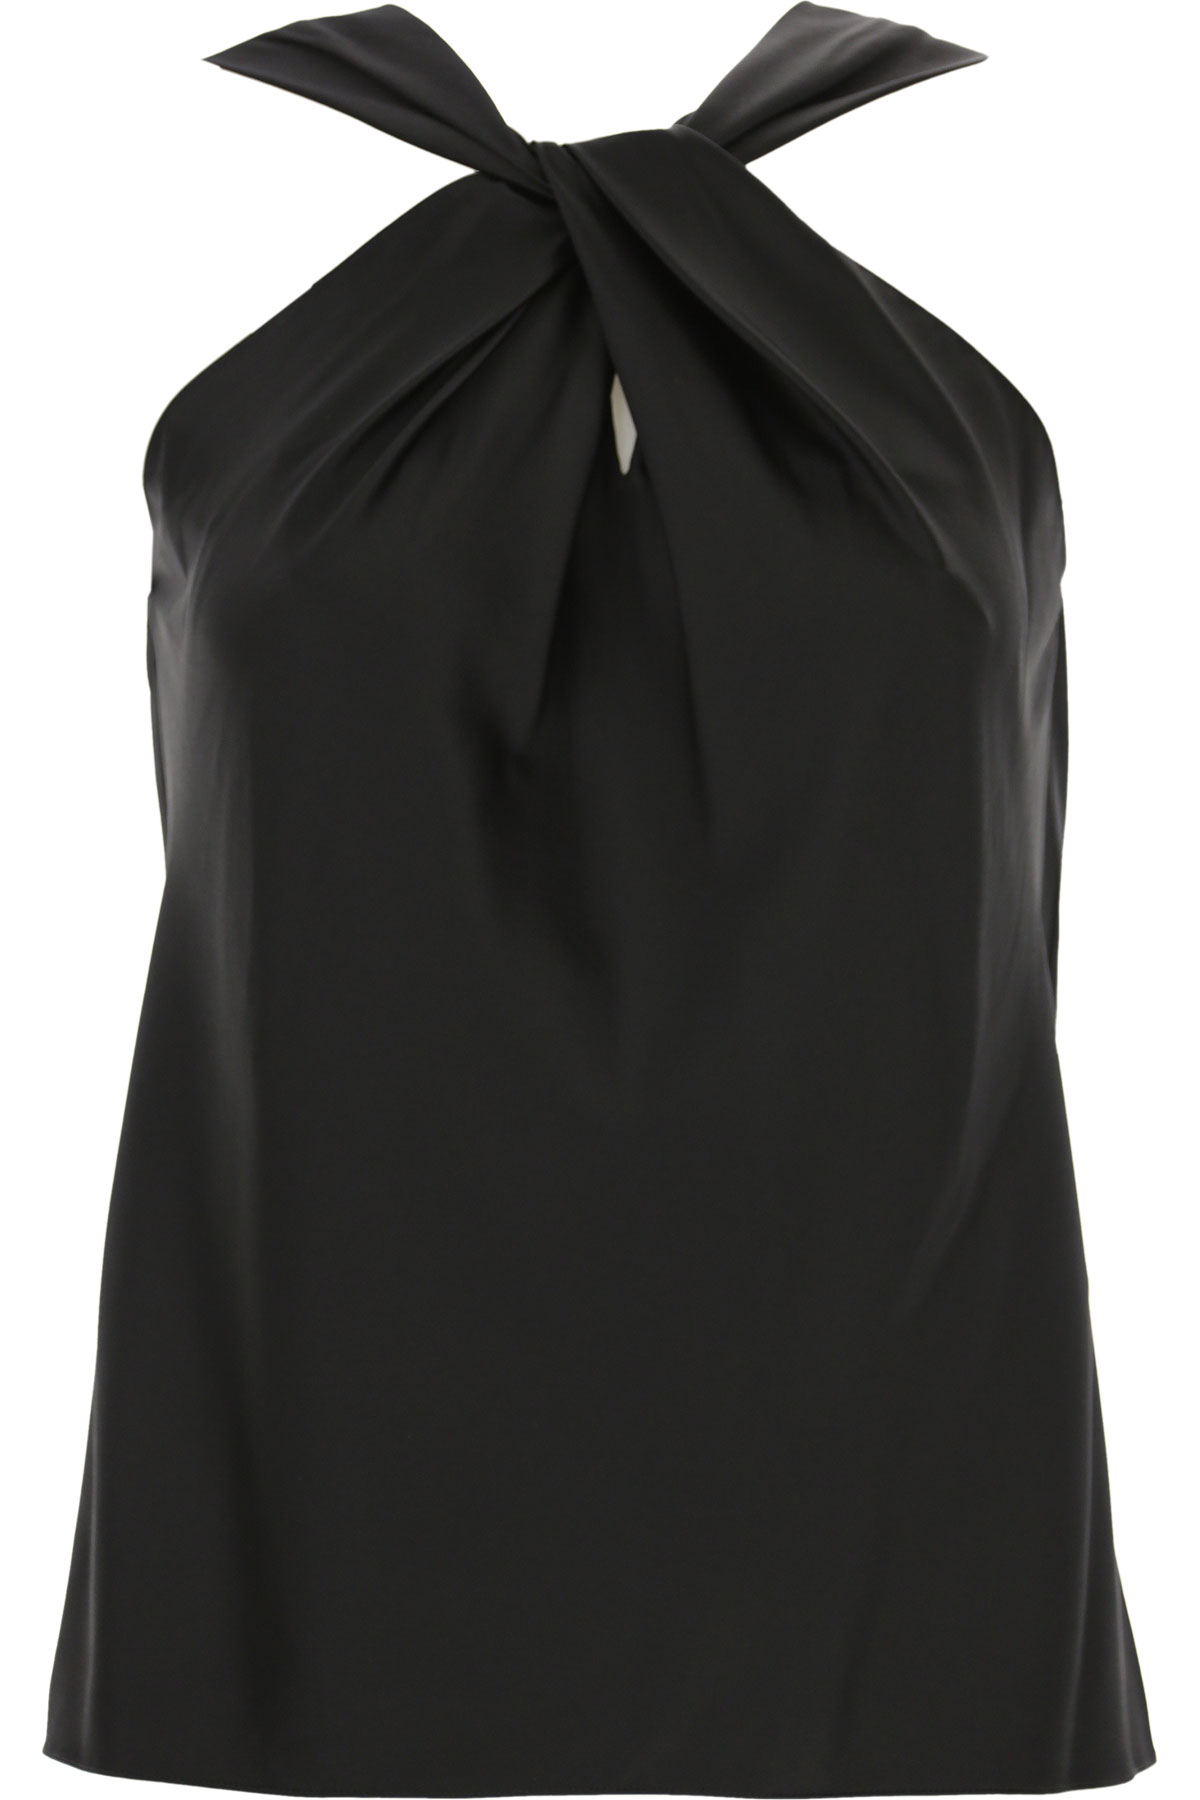 Theory Top for Women On Sale, Black, Silk, 2019, 4 6